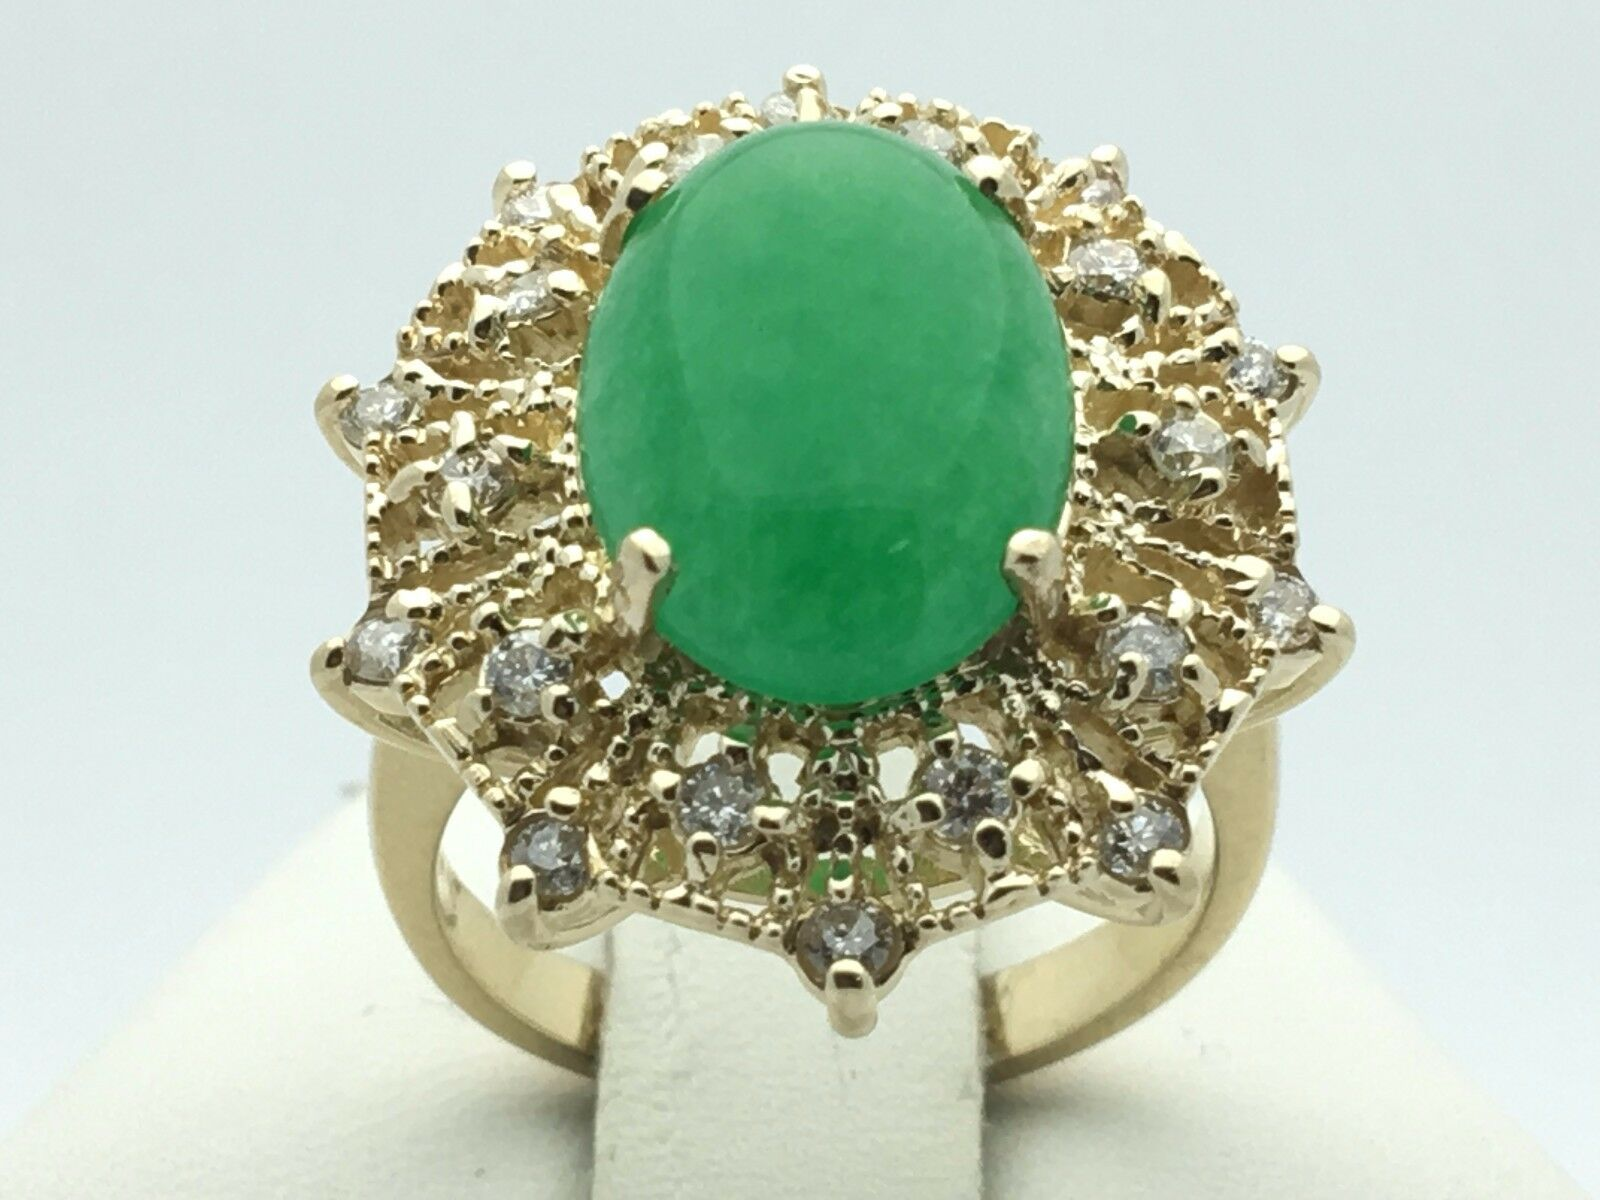 14K Yellow gold Oval 4.07ct Jade Cabochon Ring with 0.50ct Diamonds Sze 7, 7.4 g